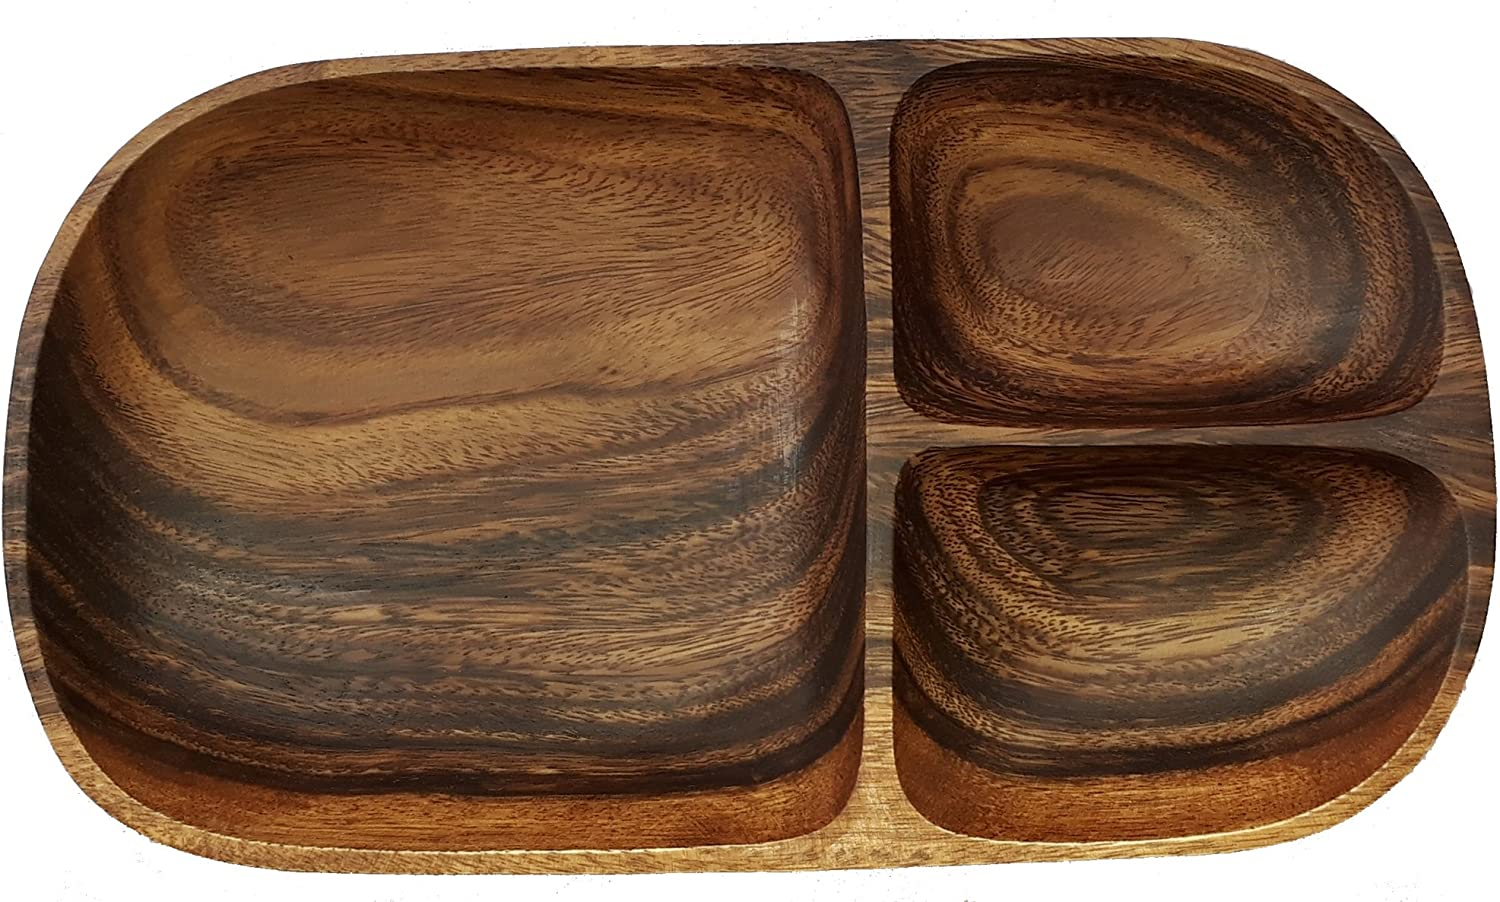 """SDS HOME IMPORTS Natural Forested Acacia Wood Oval Serving Kitchen Tray For Food with 3 Sections, 12"""" x 7"""" x 1.5""""H"""